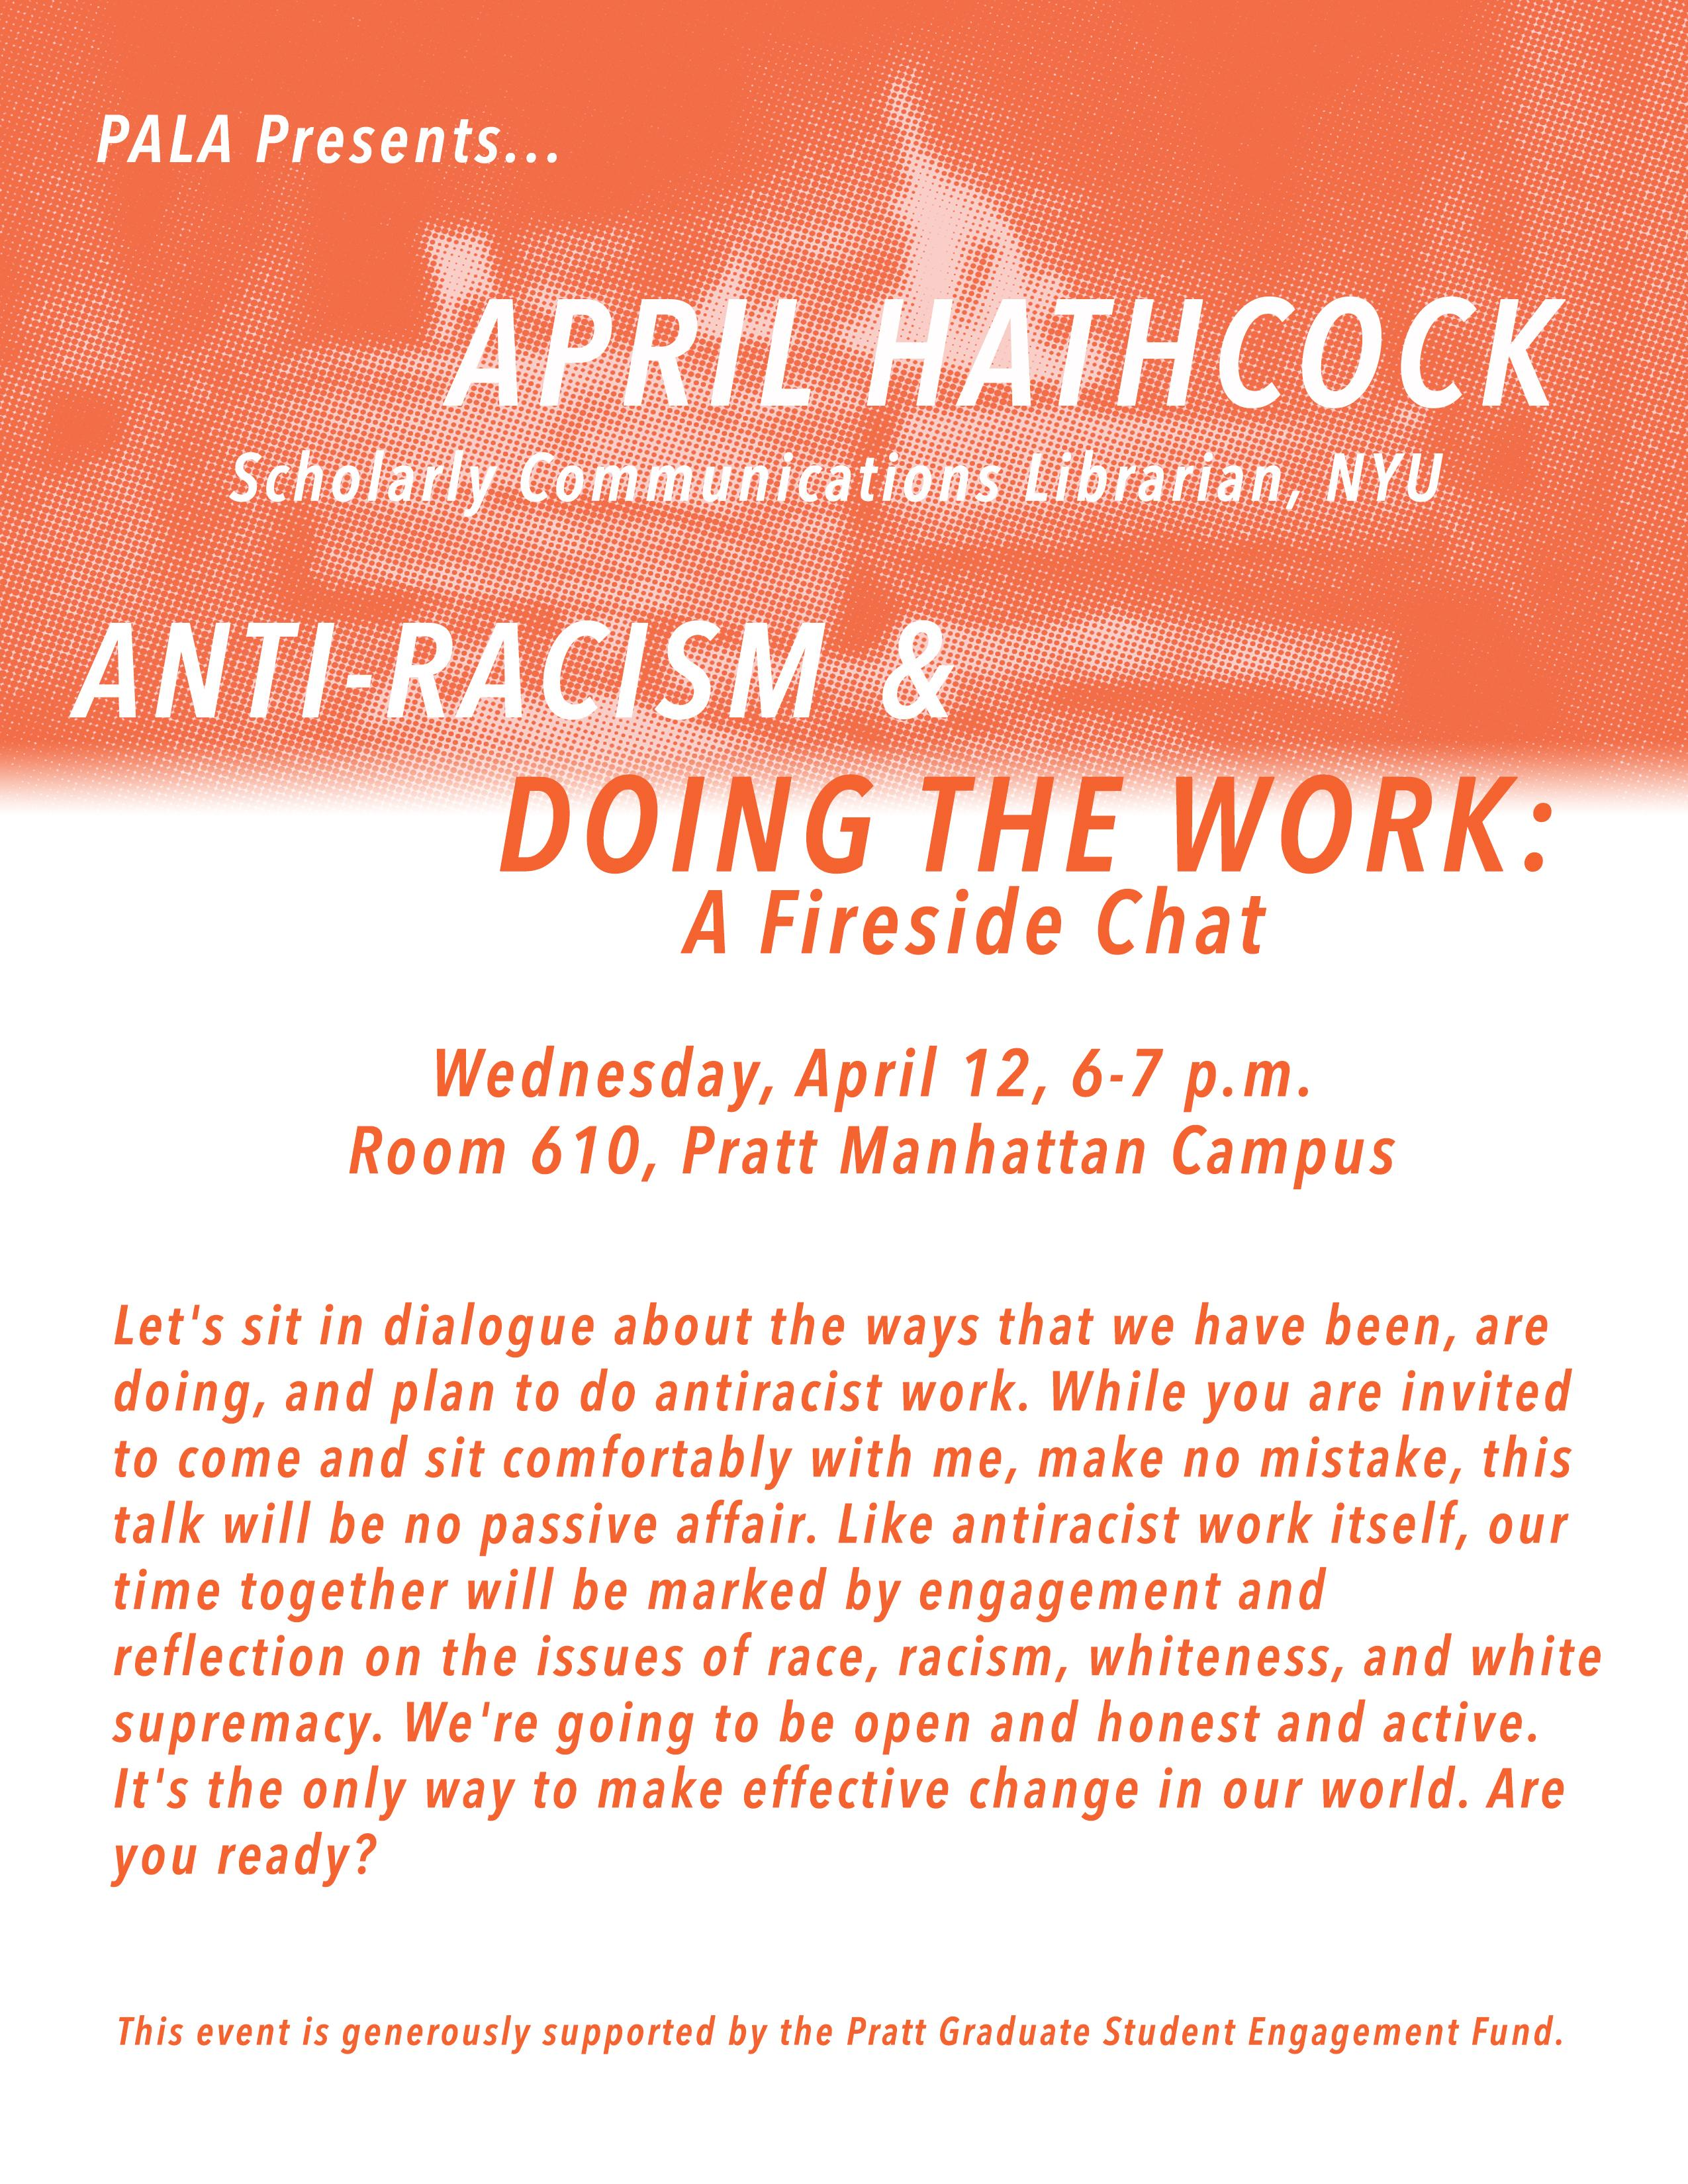 April Hathcock: Anti-Racism & Doing the Work, A Fireside Chat